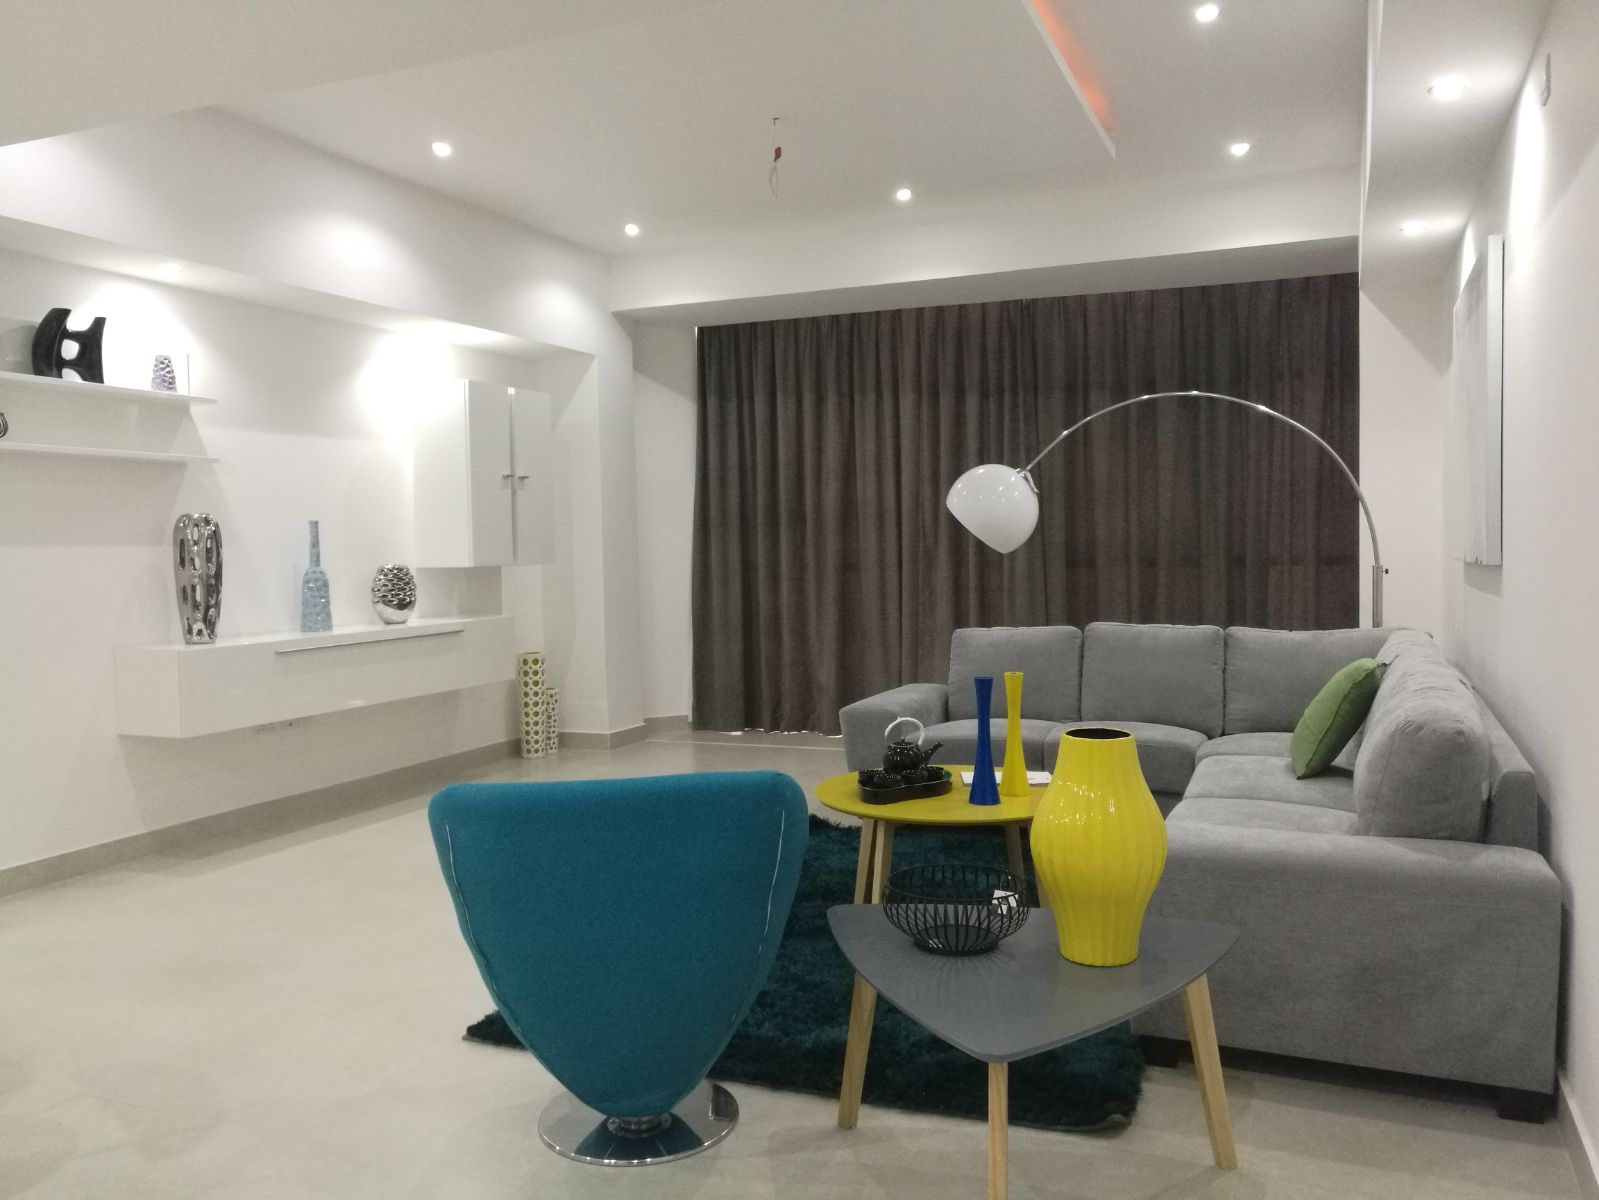 Fully furnished apartment for sale in Bahrain